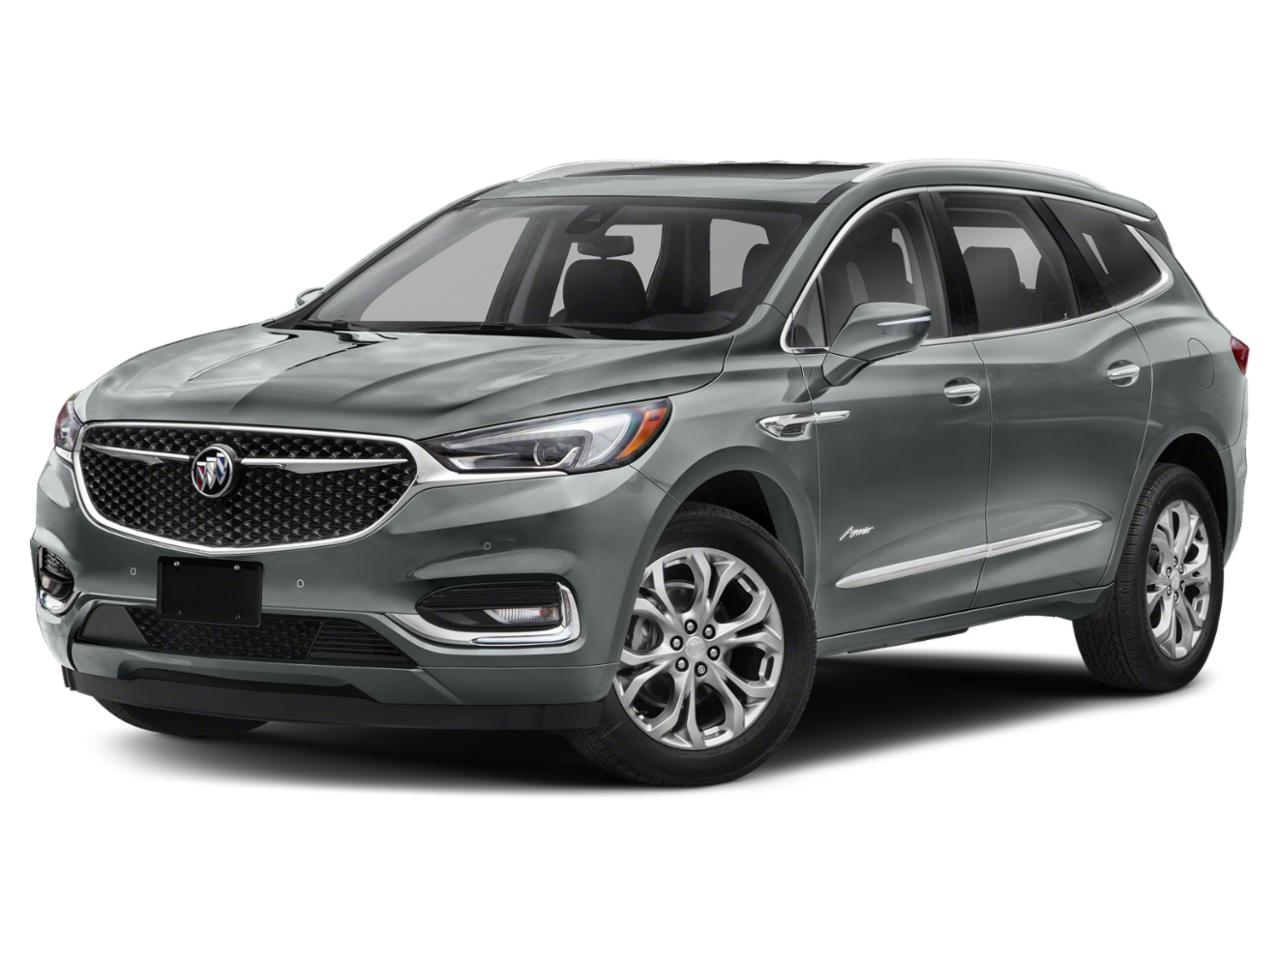 2020 Buick Enclave Vehicle Photo in Oshkosh, WI 54904